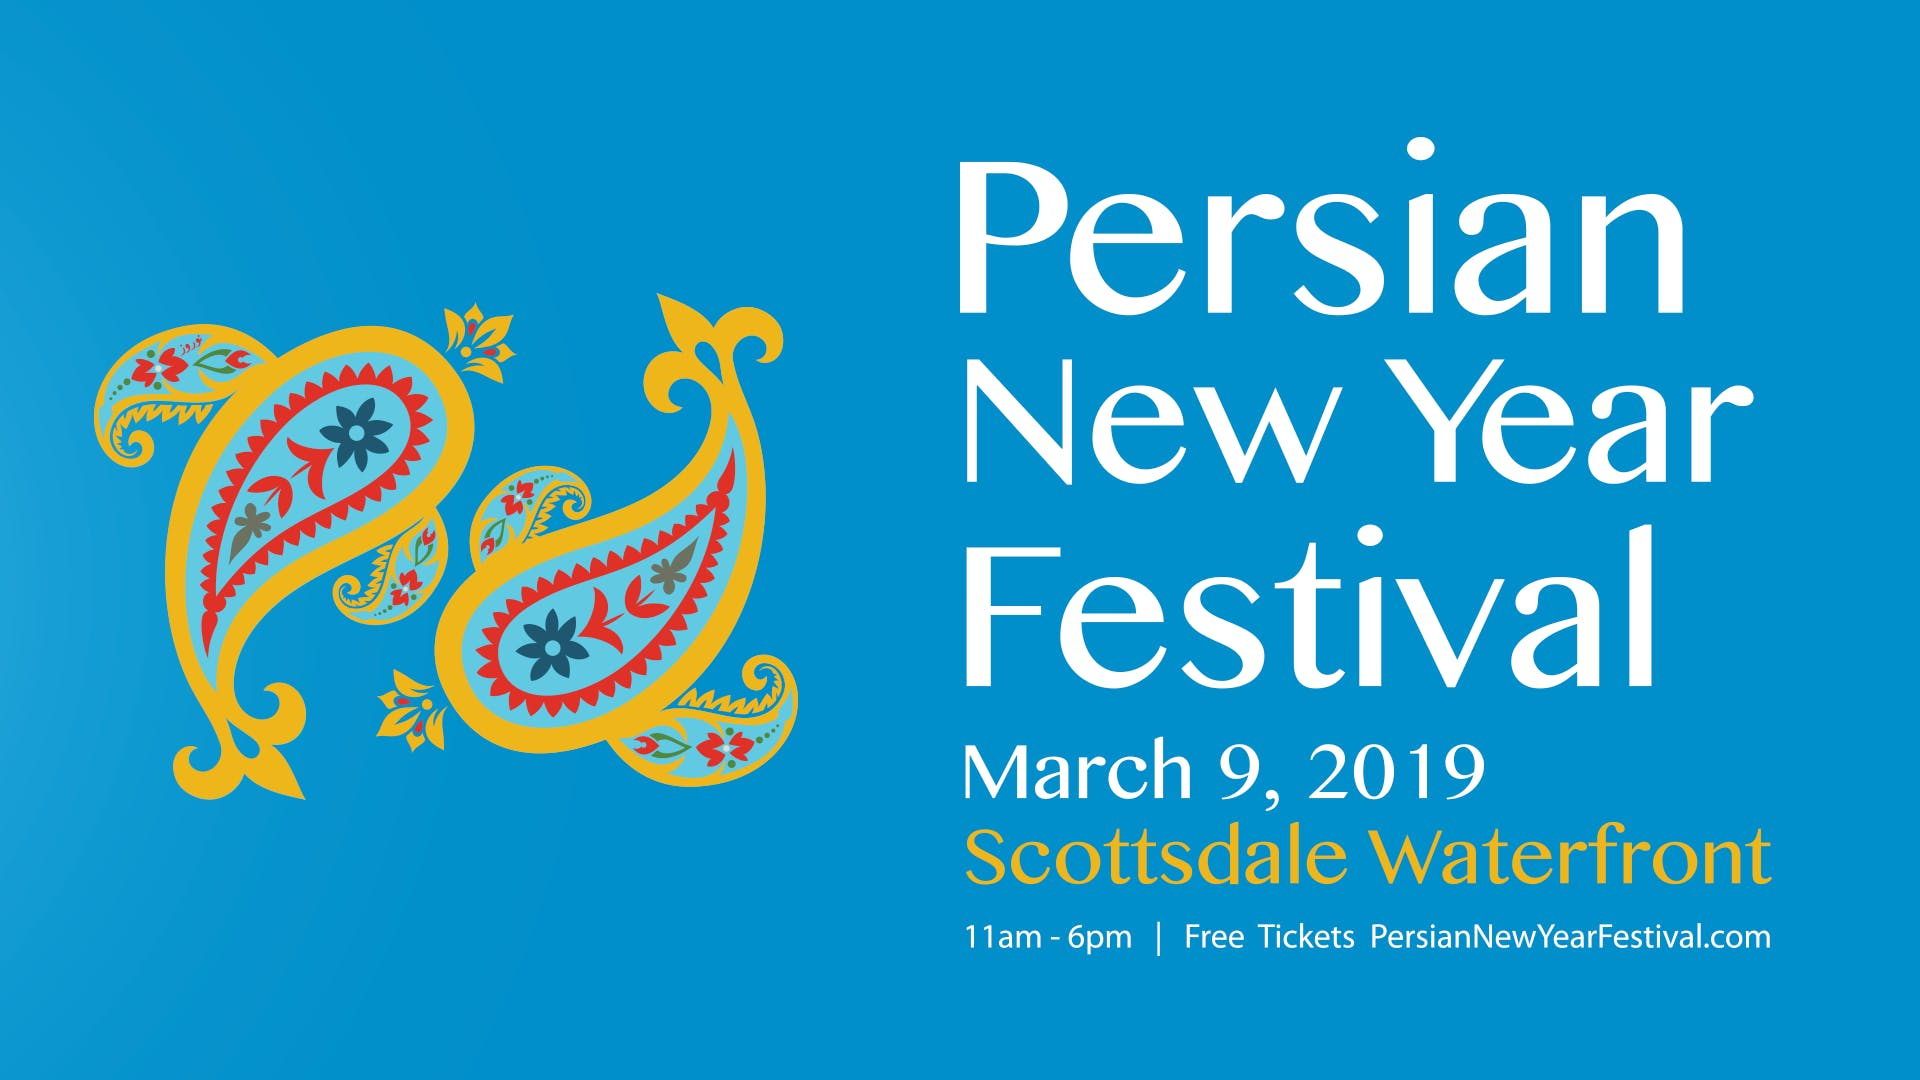 Persian New Year Festival - March 9, 2019